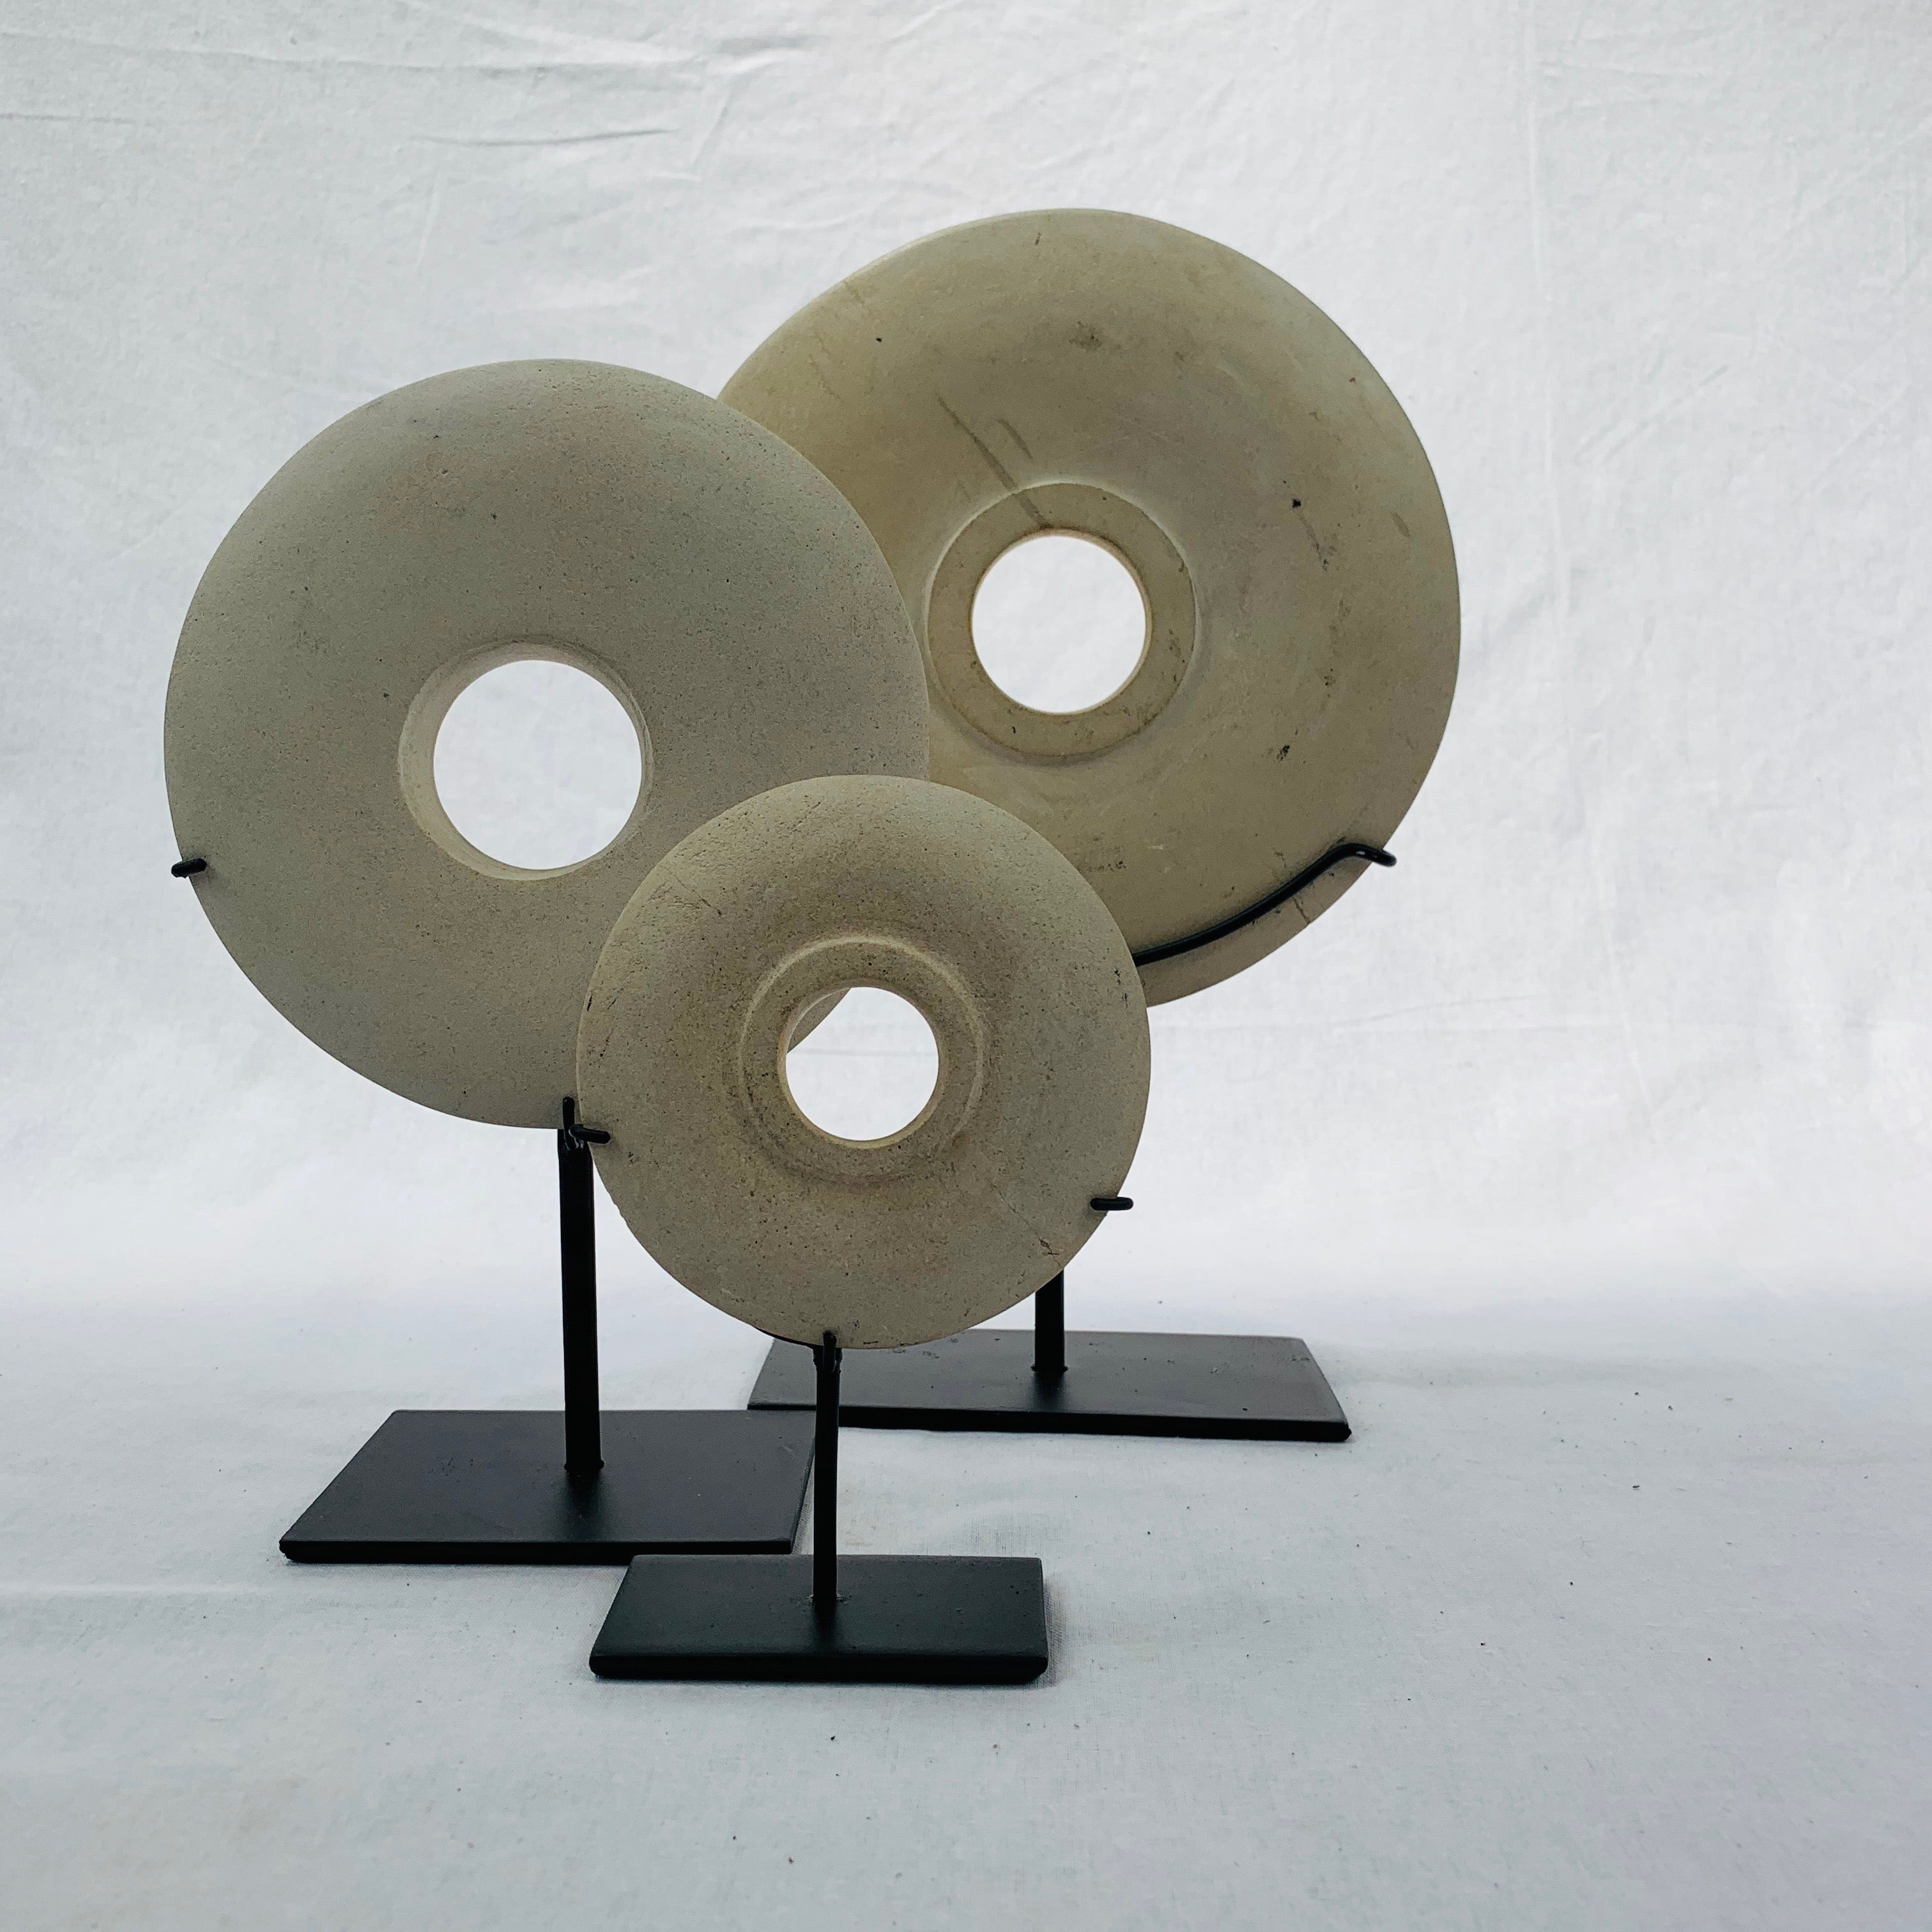 X SMALL STONE DISC ON STAND